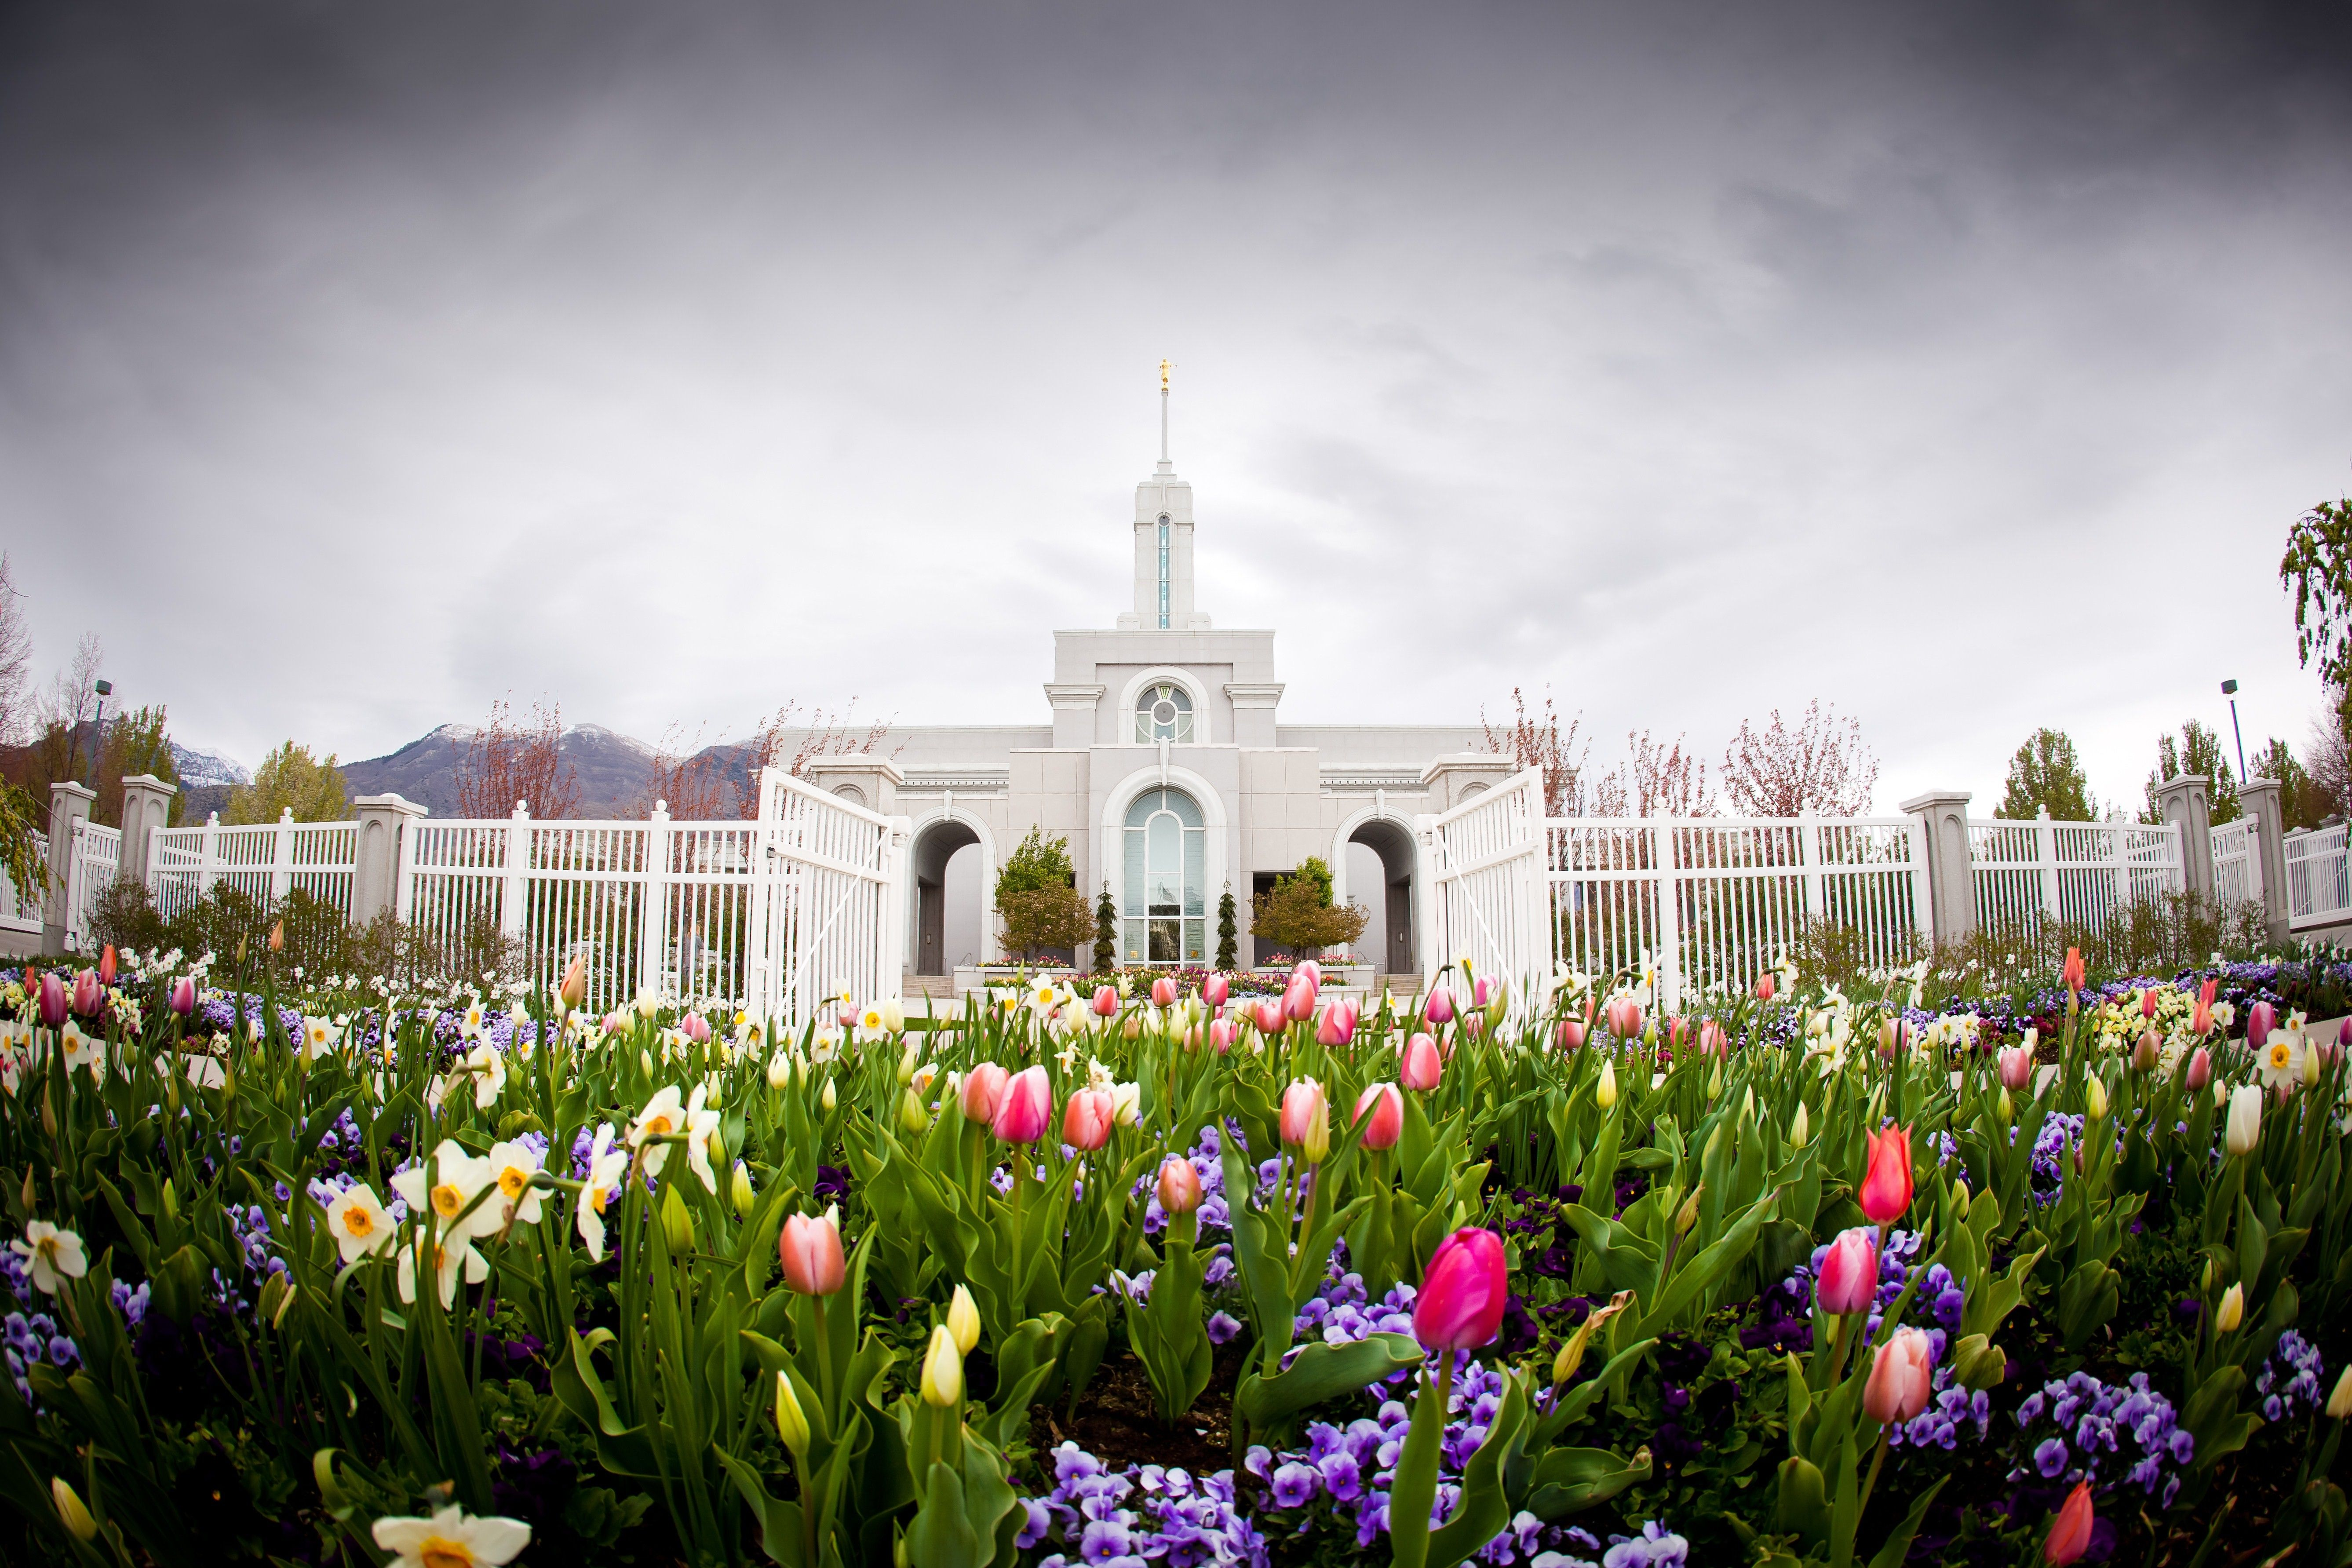 The entire Mount Timpanogos Utah Temple, including scenery.